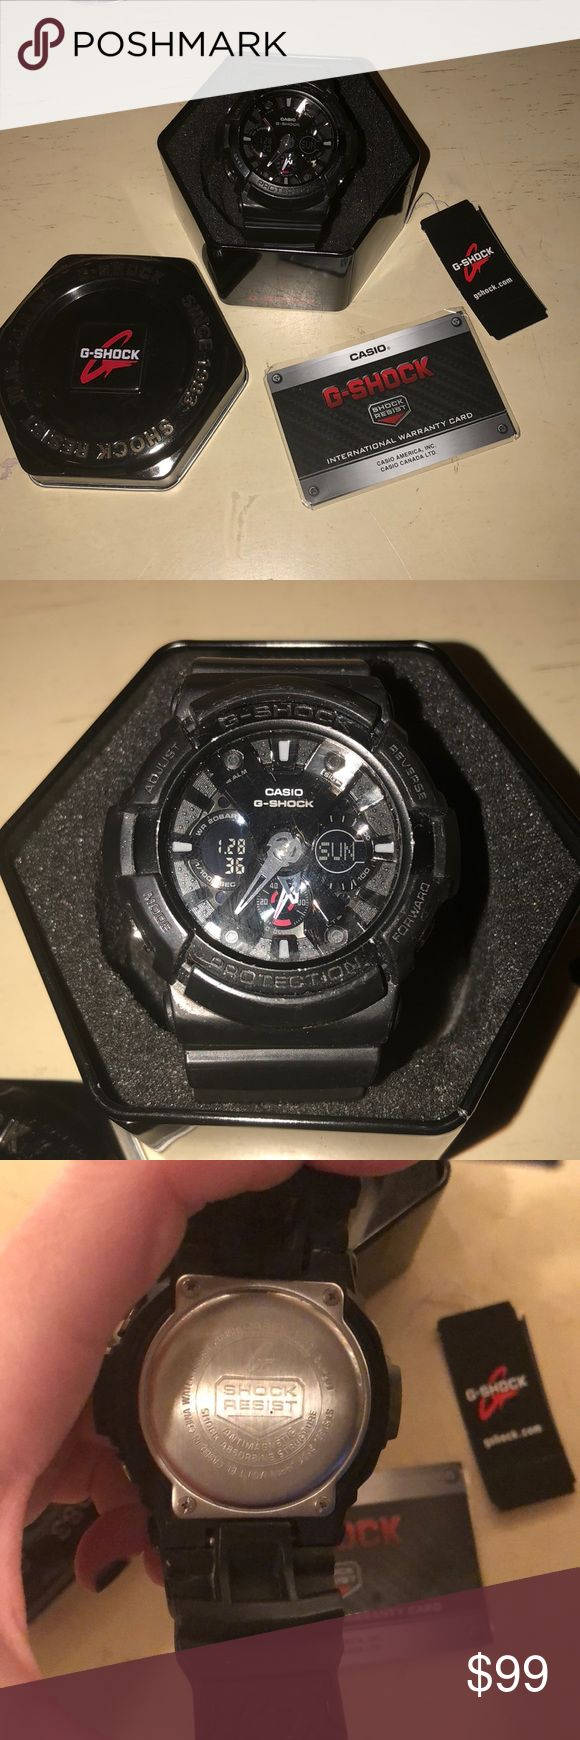 G-Shock Watch temp price watch Watch style #5229 in great worn condition. Black on black!!! Looks great on the wrist and can be dressed up or down. Battery works!!! 24 hr temp price drop G-Shock Accessories Watches